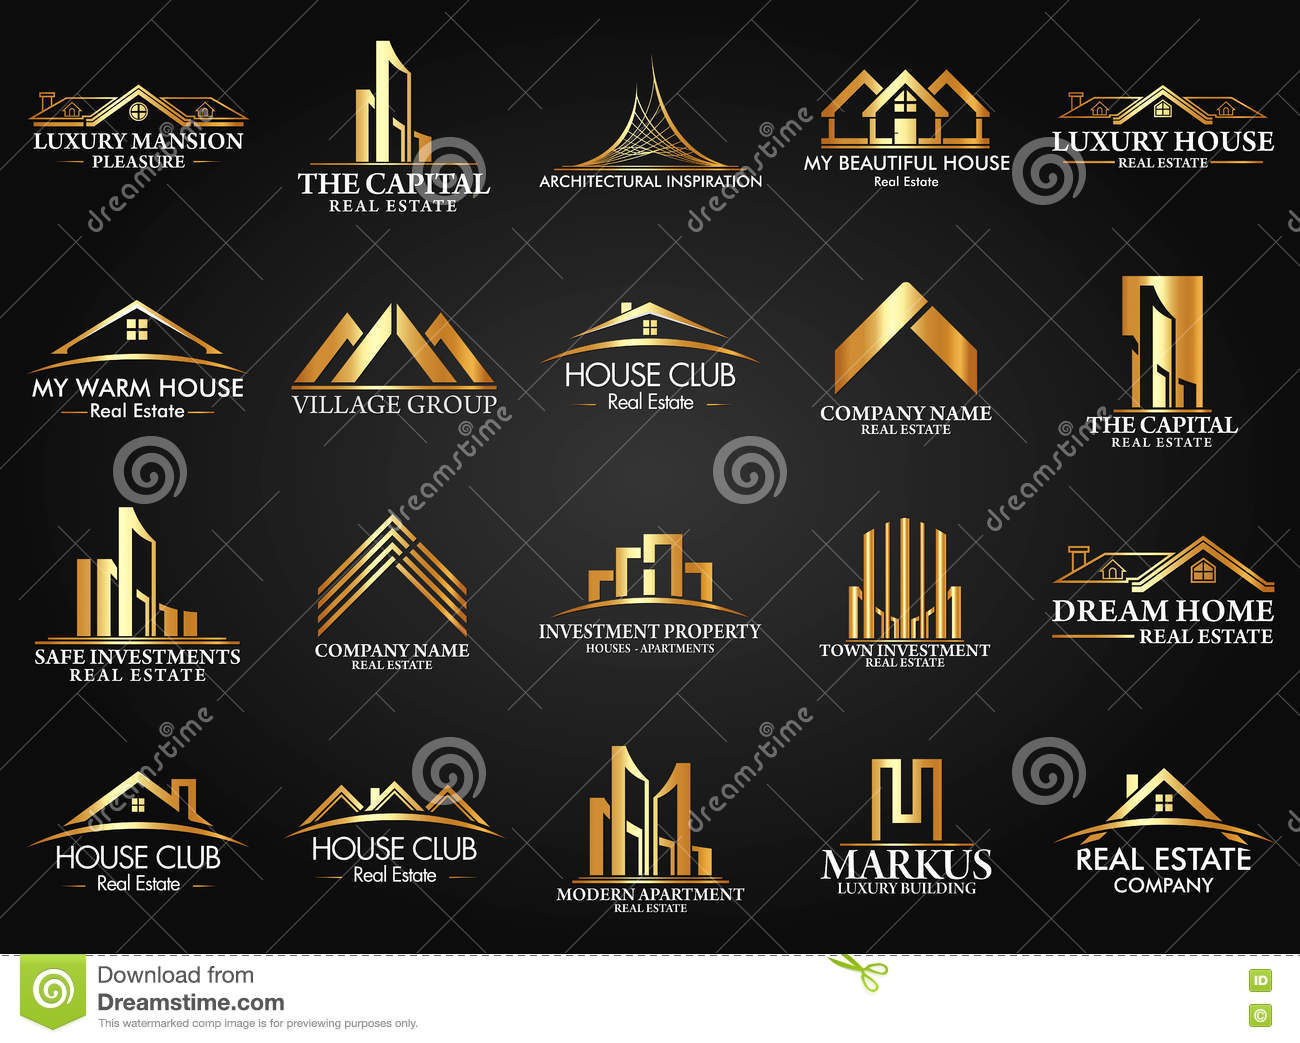 Ensemble et groupe Real Estate, bâtiment et construction Logo Vector Design